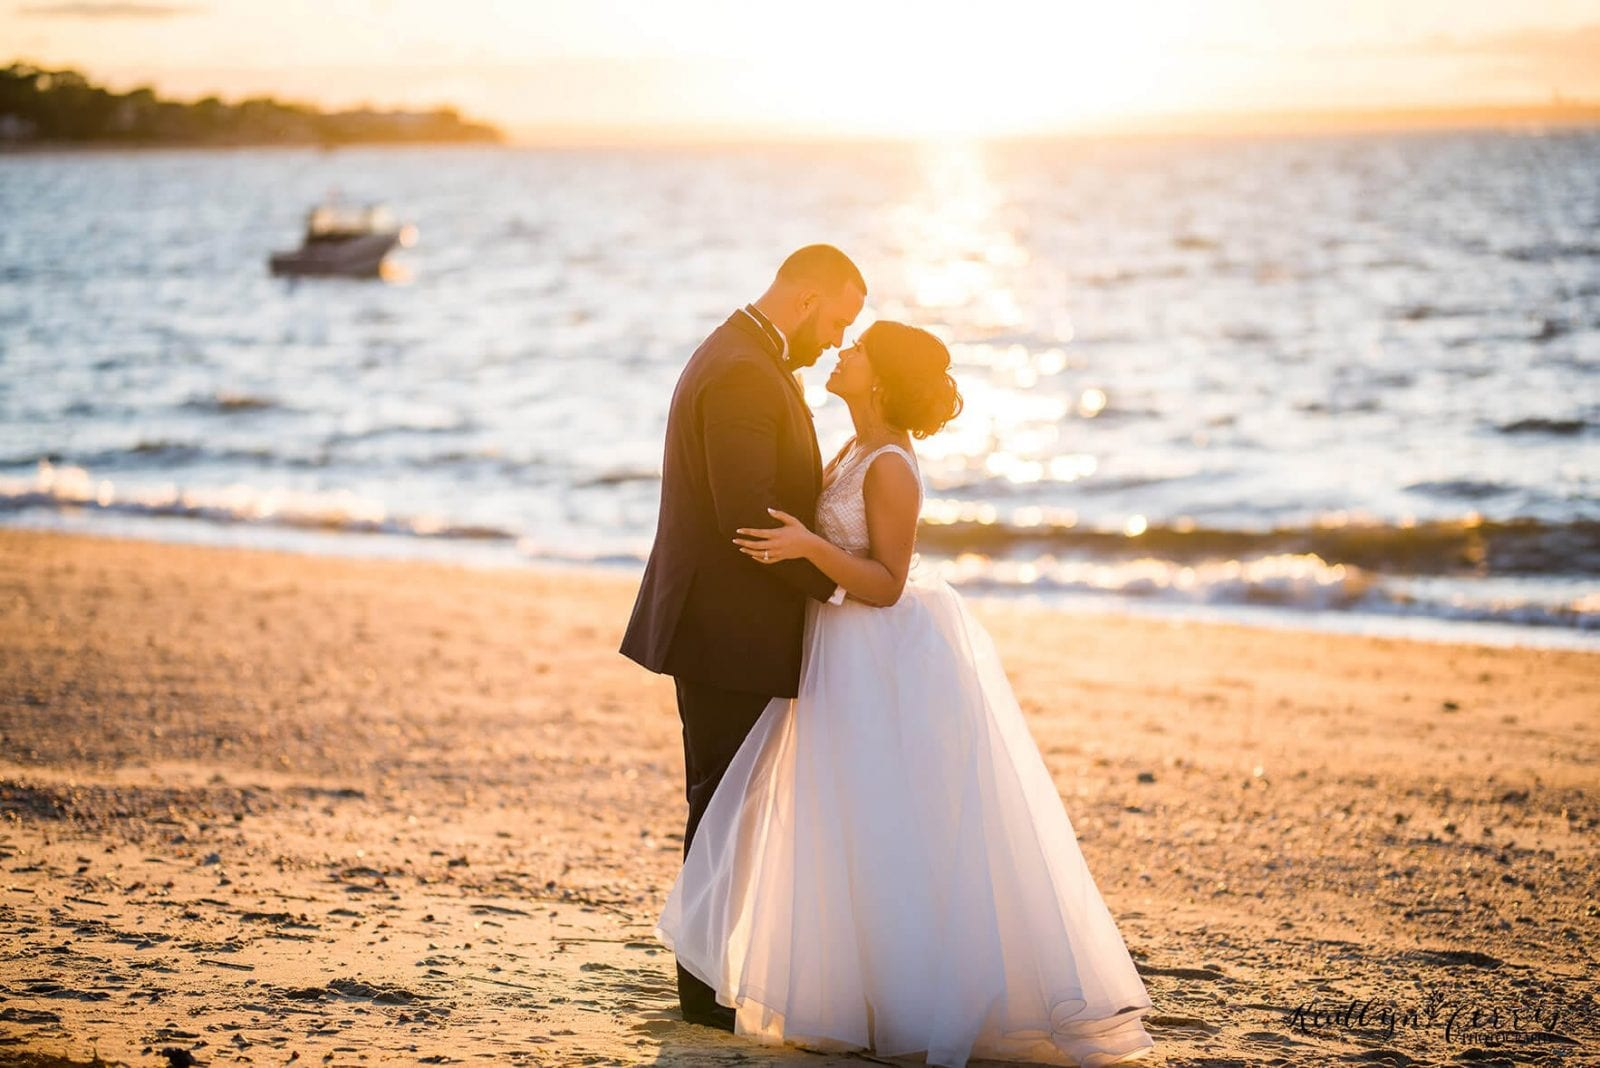 Bride and groom looking into each others eyes on the beach of The Crescent Beach Club in front of the water at sunset